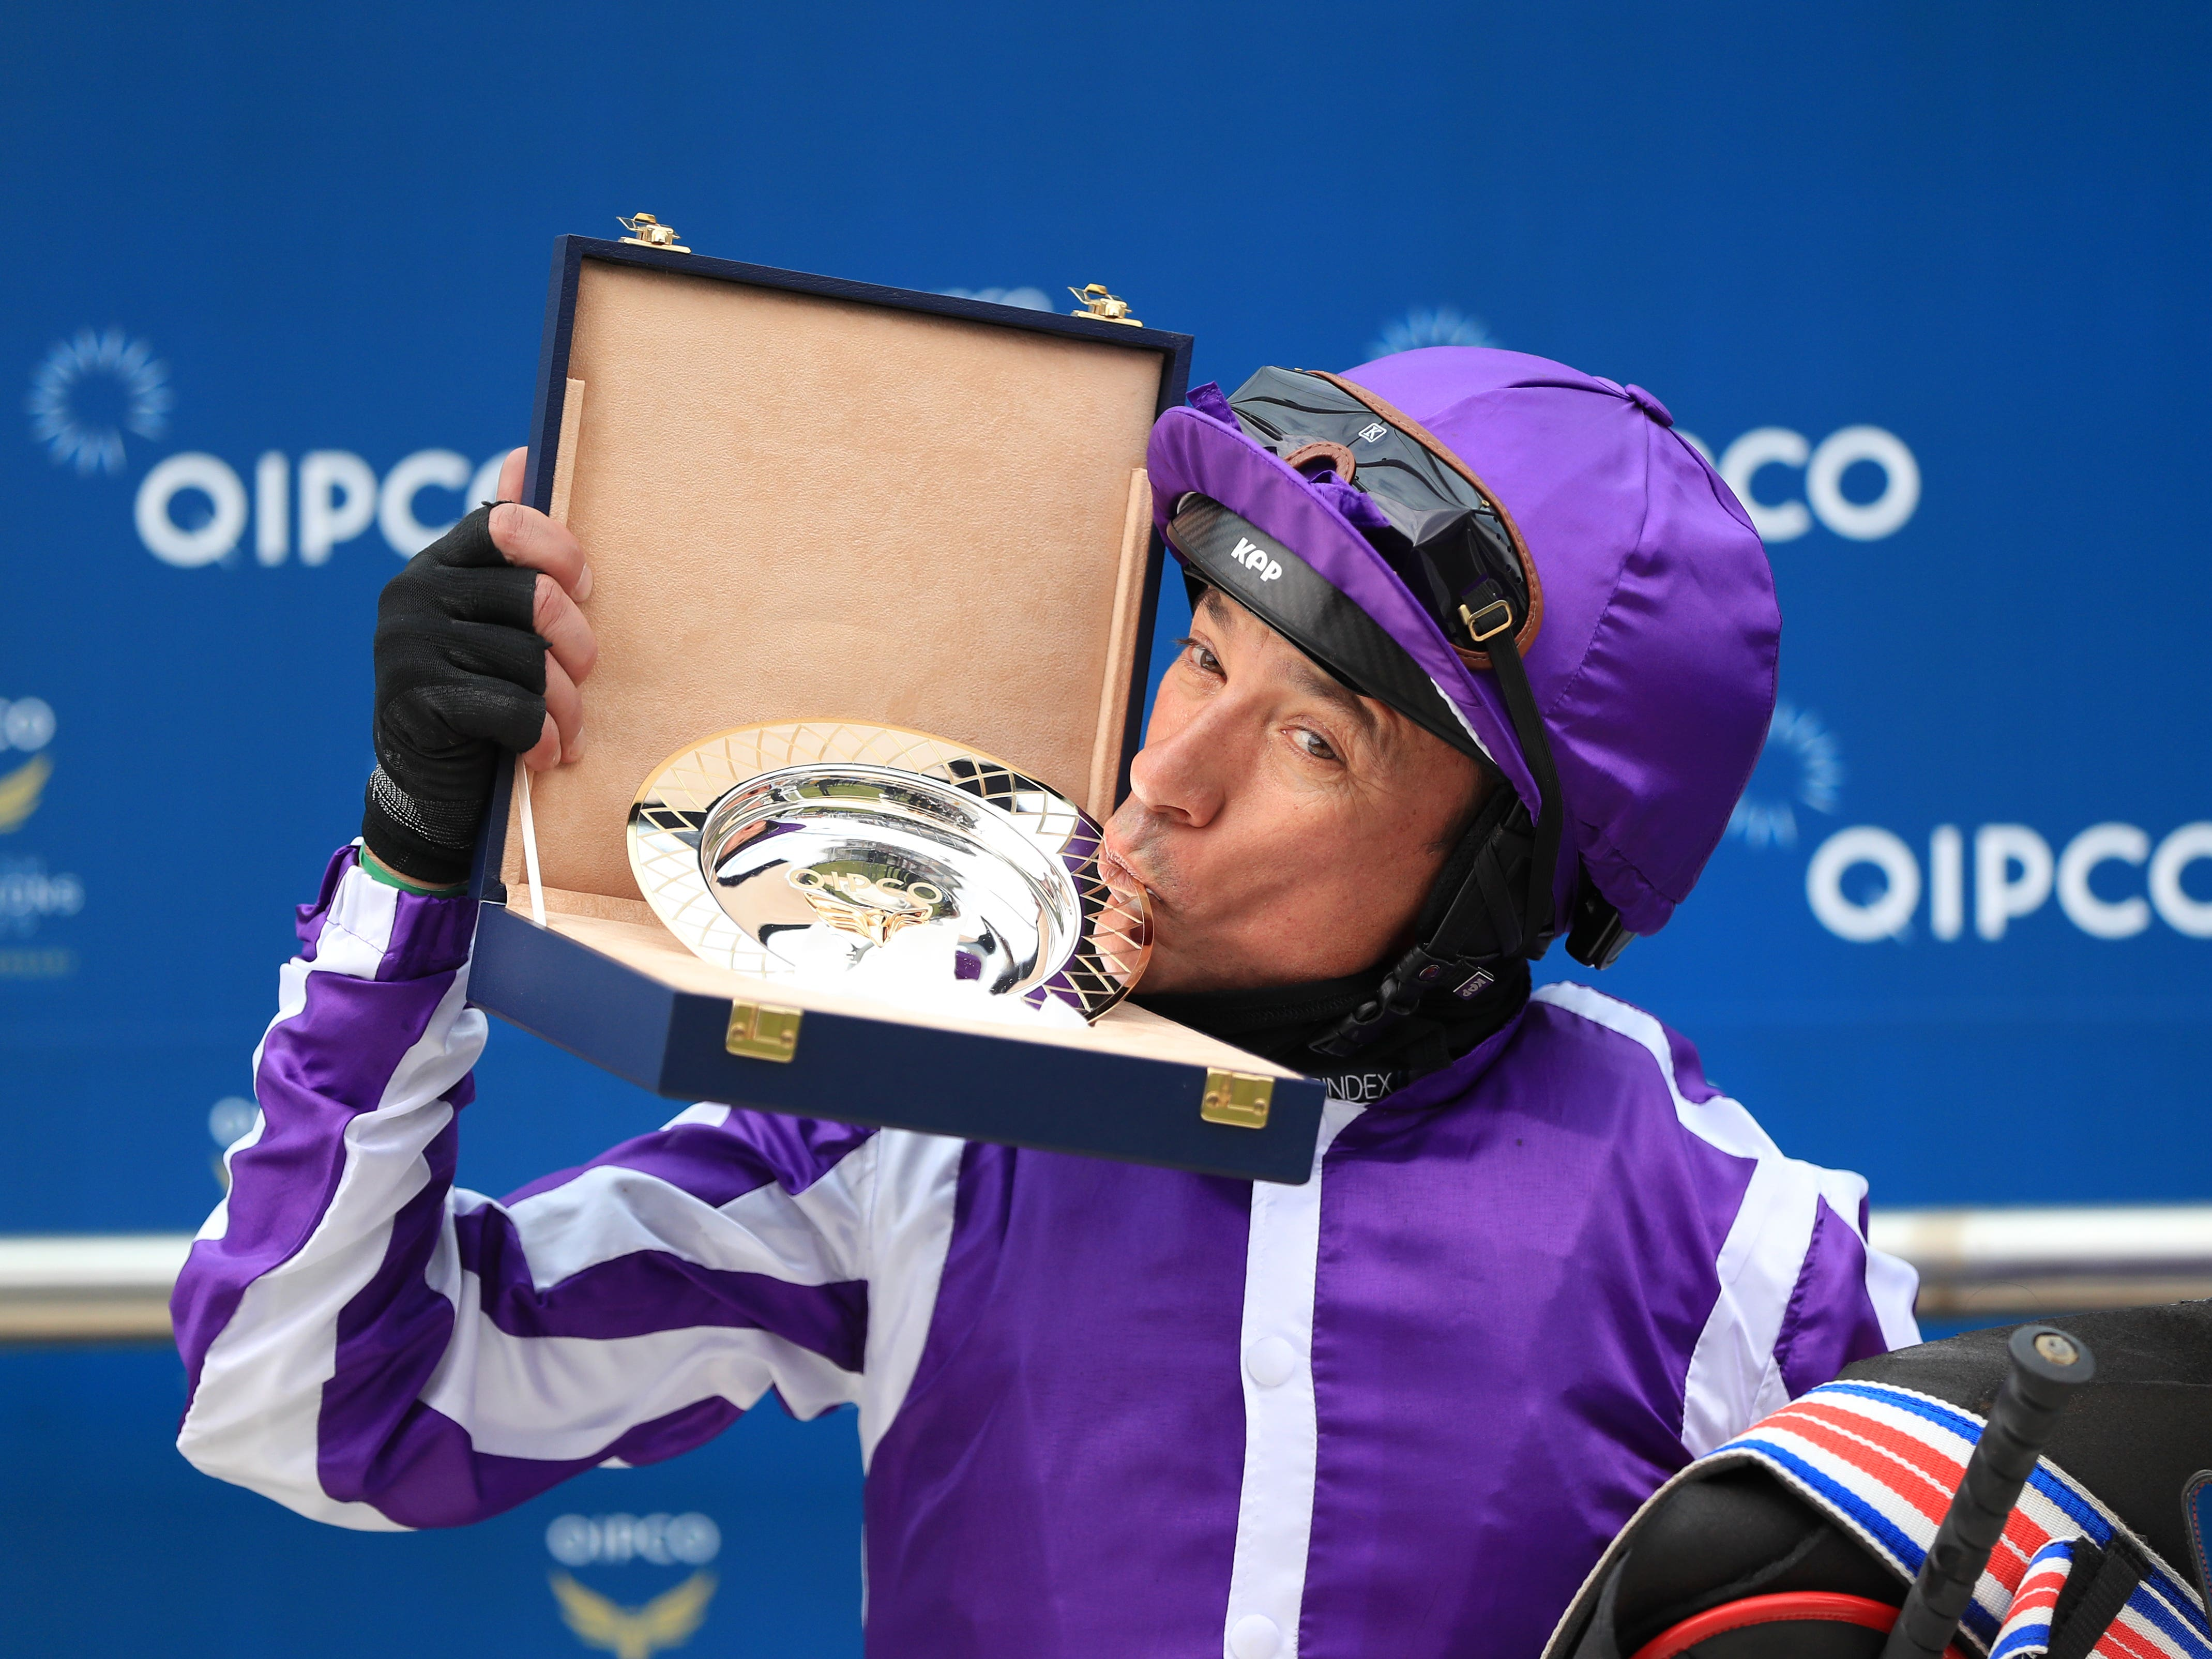 Frankie Dettori kisses the trophy after winning the Qipco 1000 Guineas (Mike Egerton/PA)